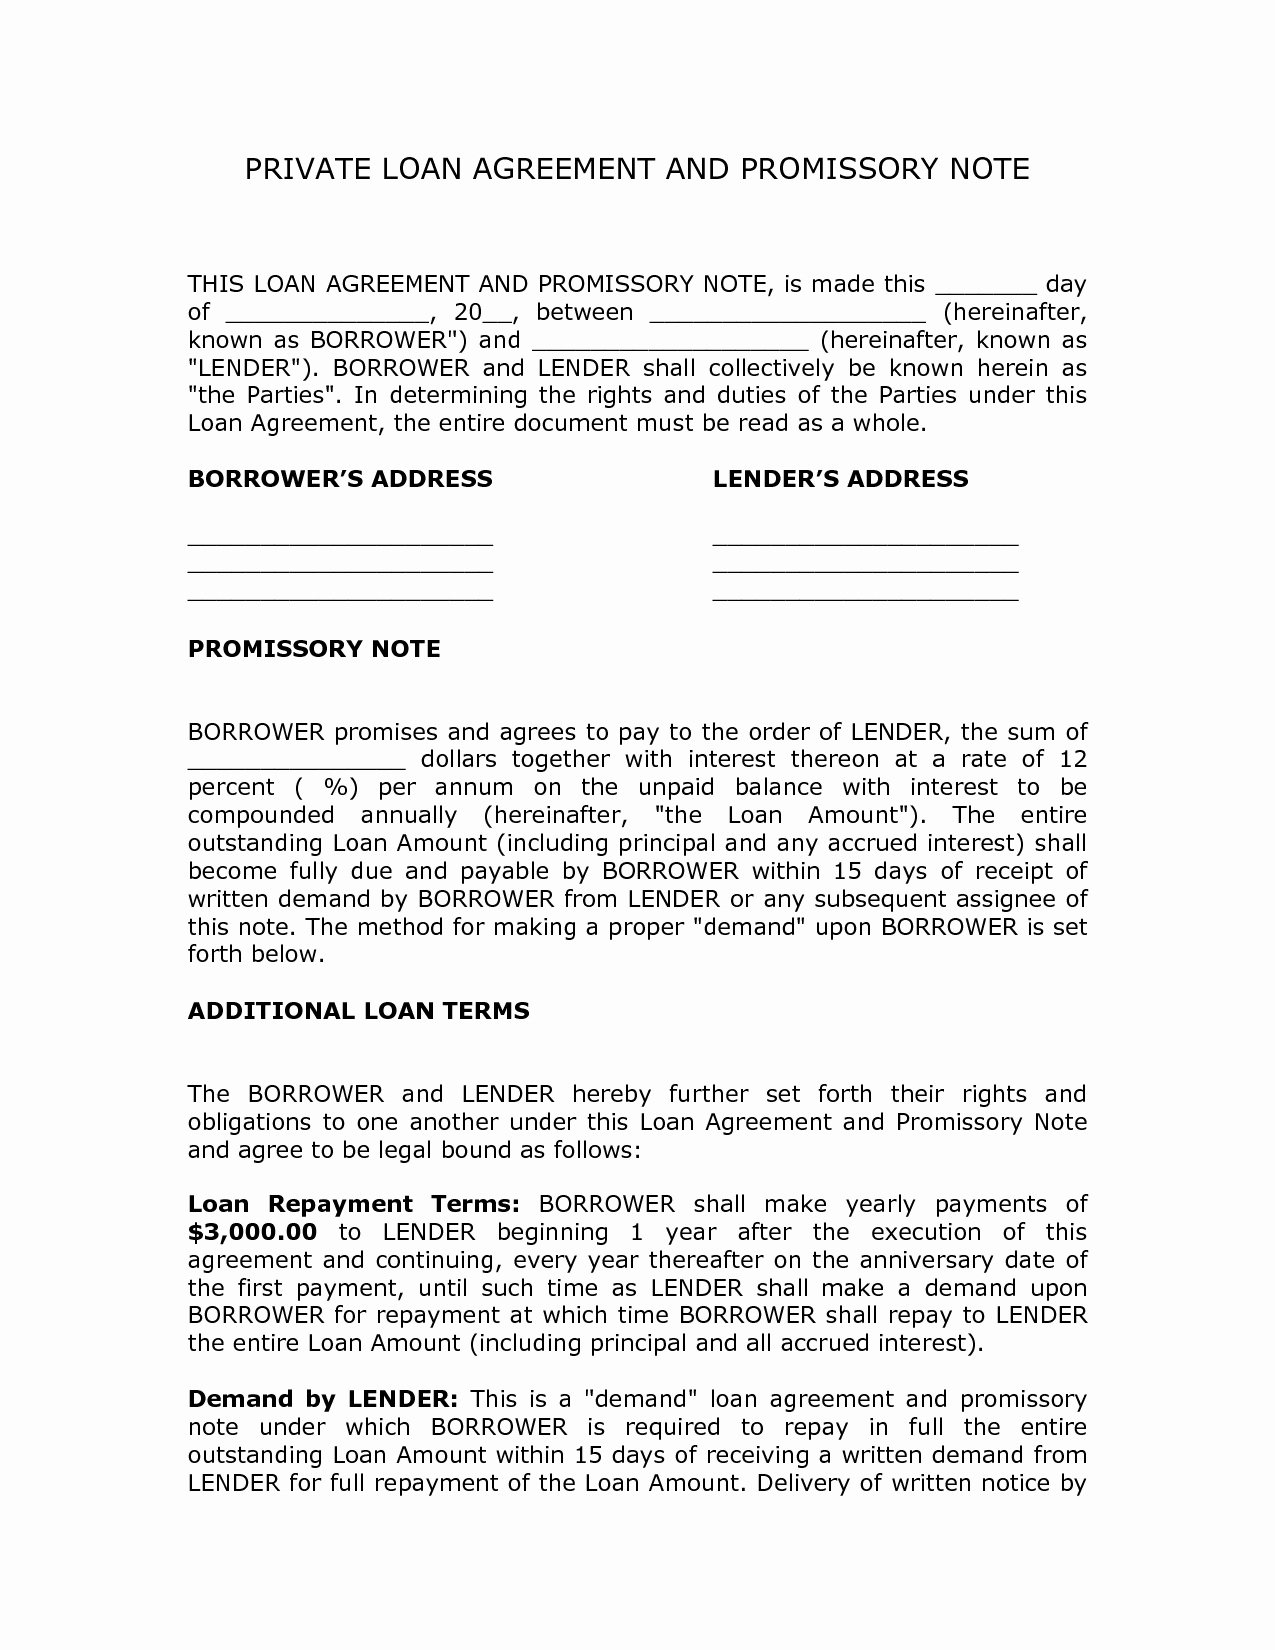 Escrow Demand Letter Template - 24 New Escrow Agreement Example Pics